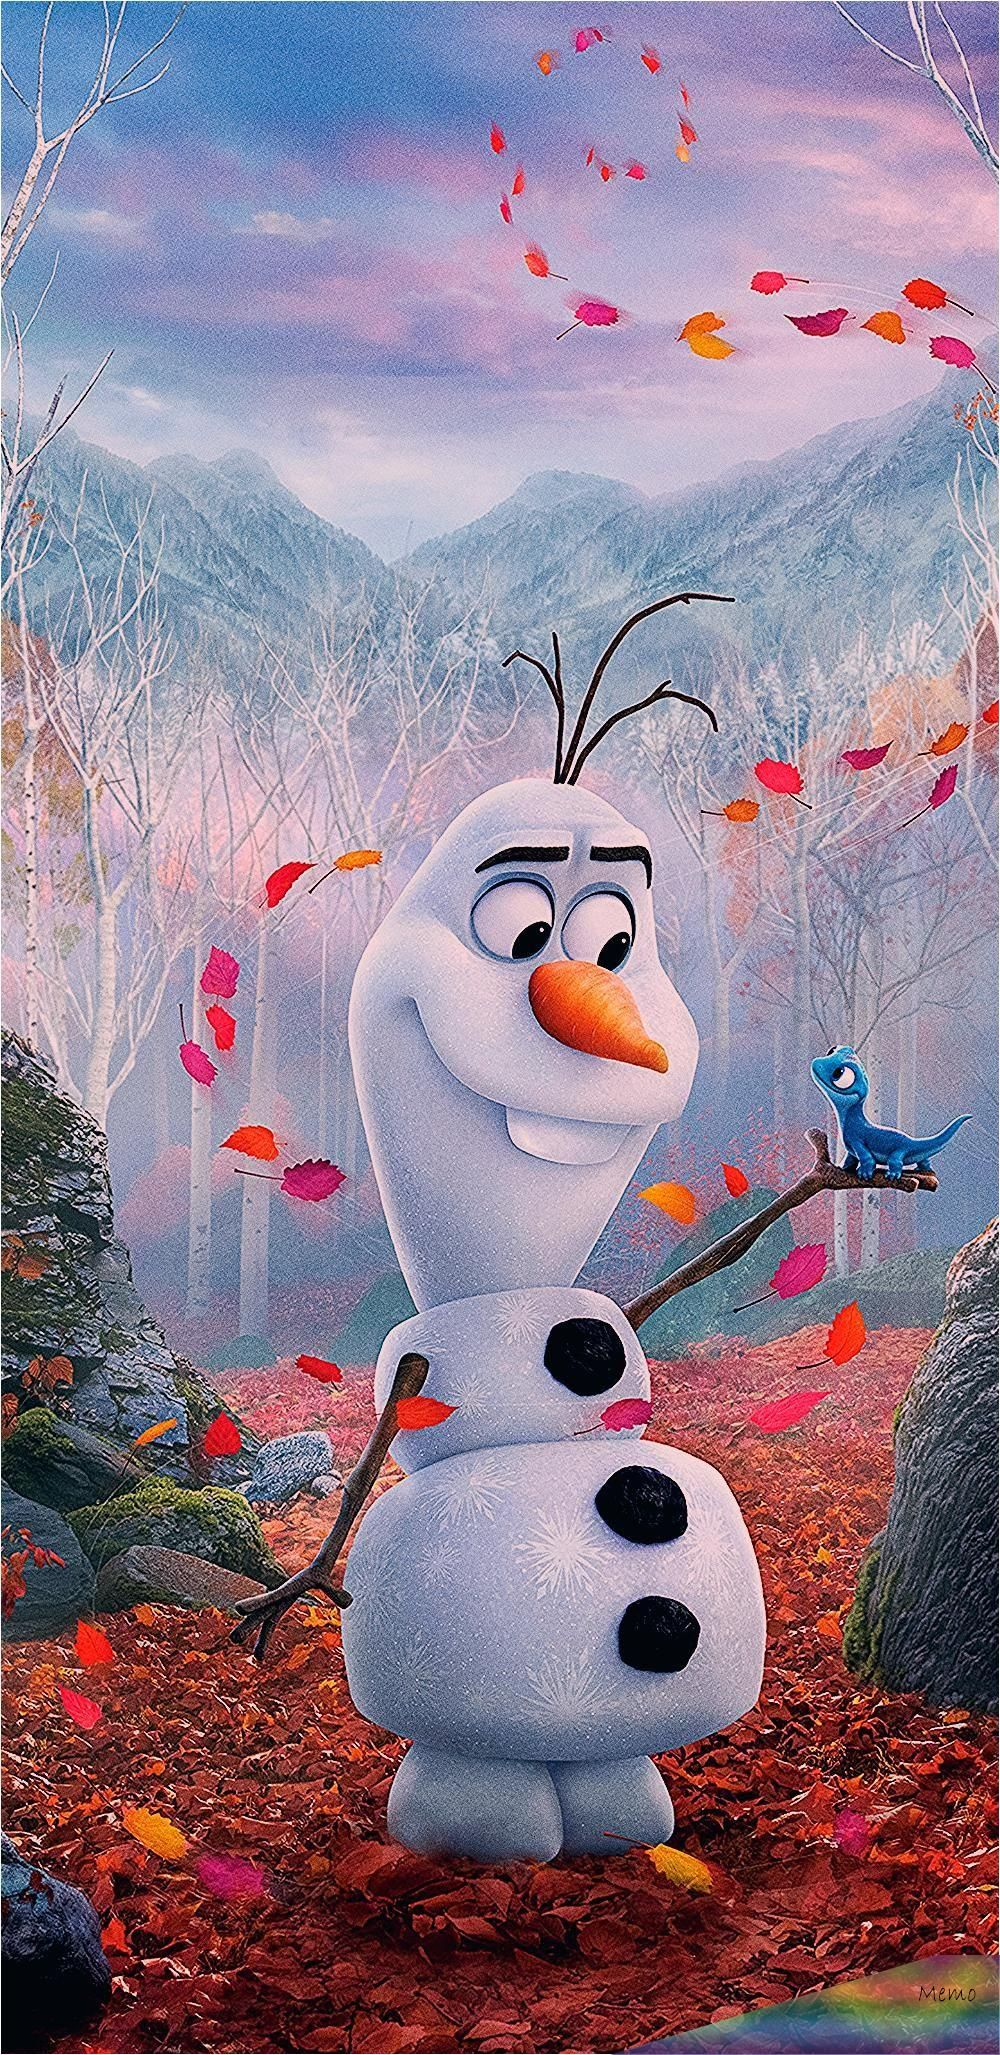 Jan 18, 2020 - Snowman Olaf from frozen 2 movie 14402960 wallpaper